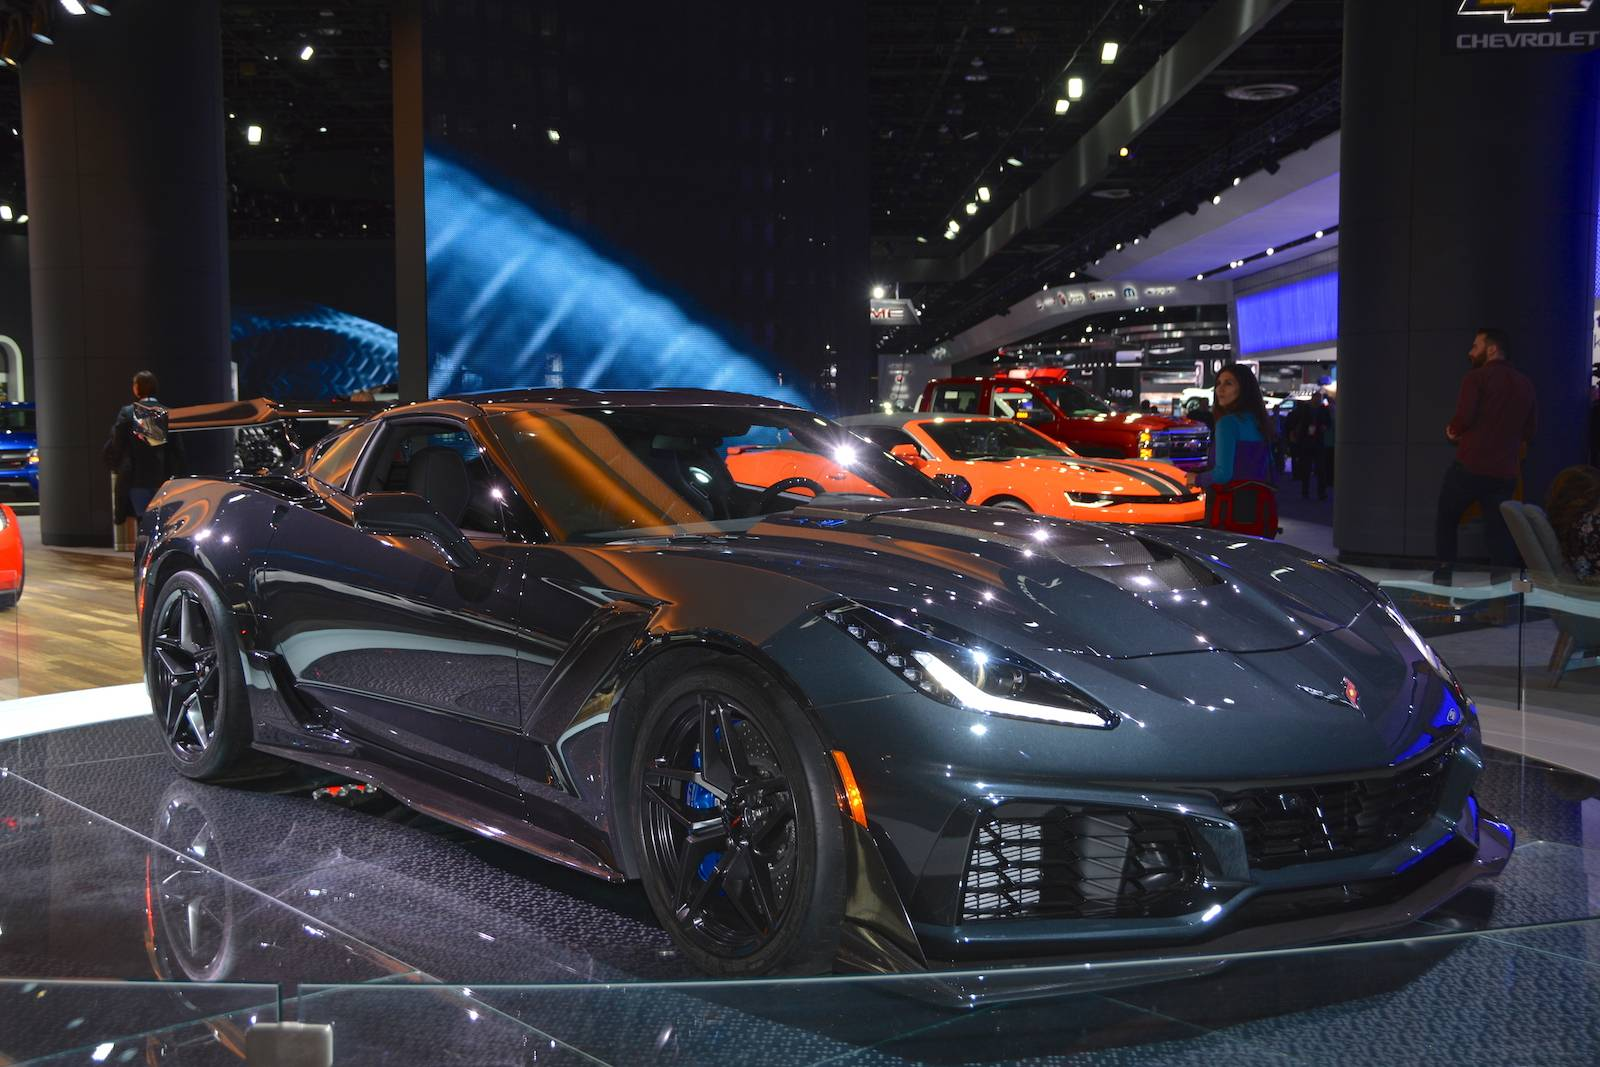 Detroit 2018: Chevrolet Corvette ZR1